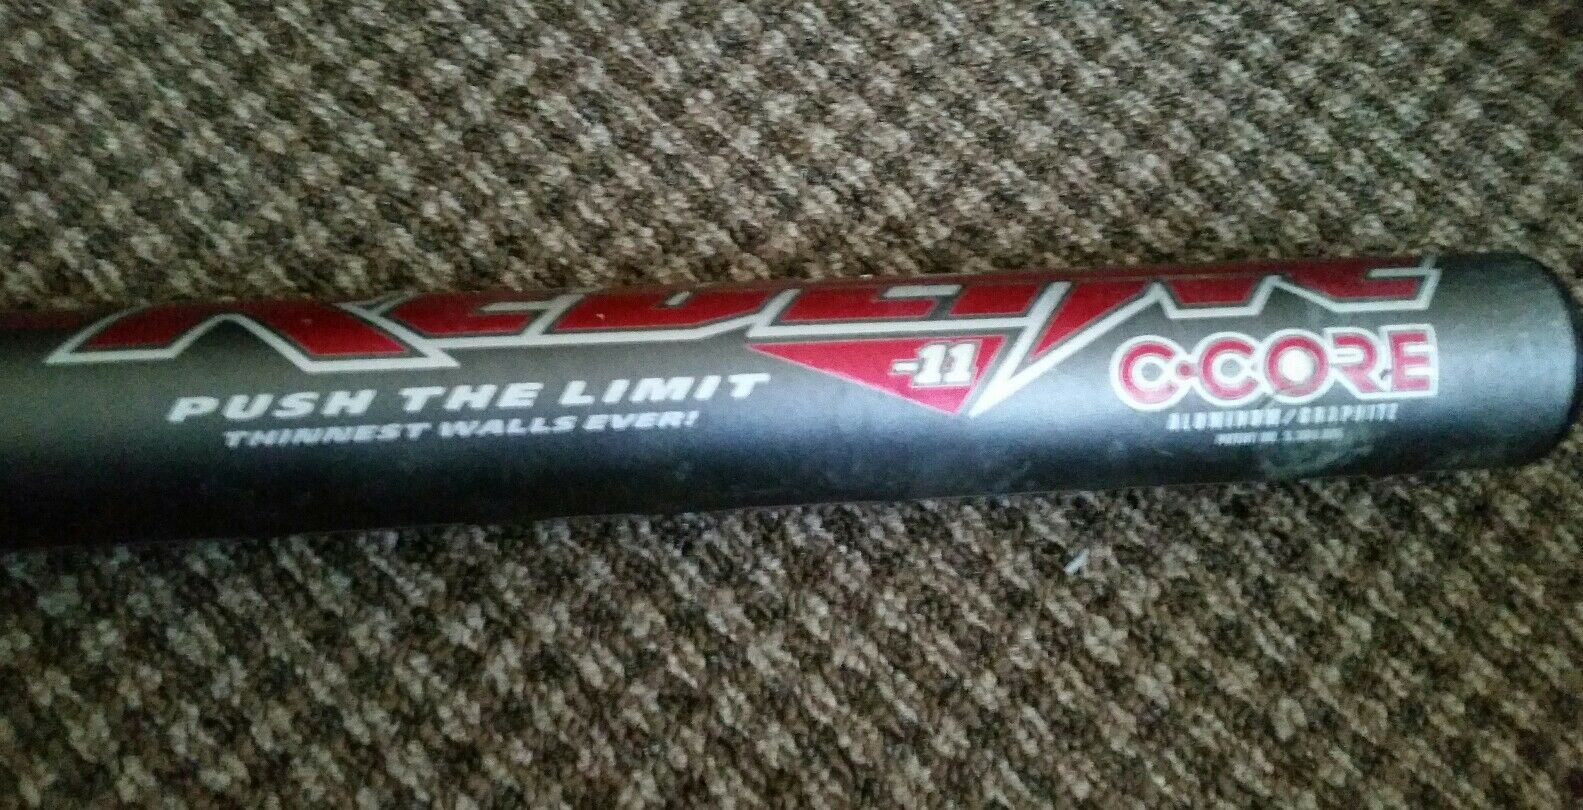 Easton de Redline C-Core escandio Softbol bate de Easton pared delgada 33 in (approx. 83.82 cm). -11/22 OZ (approx. 623.68 g). 70635b